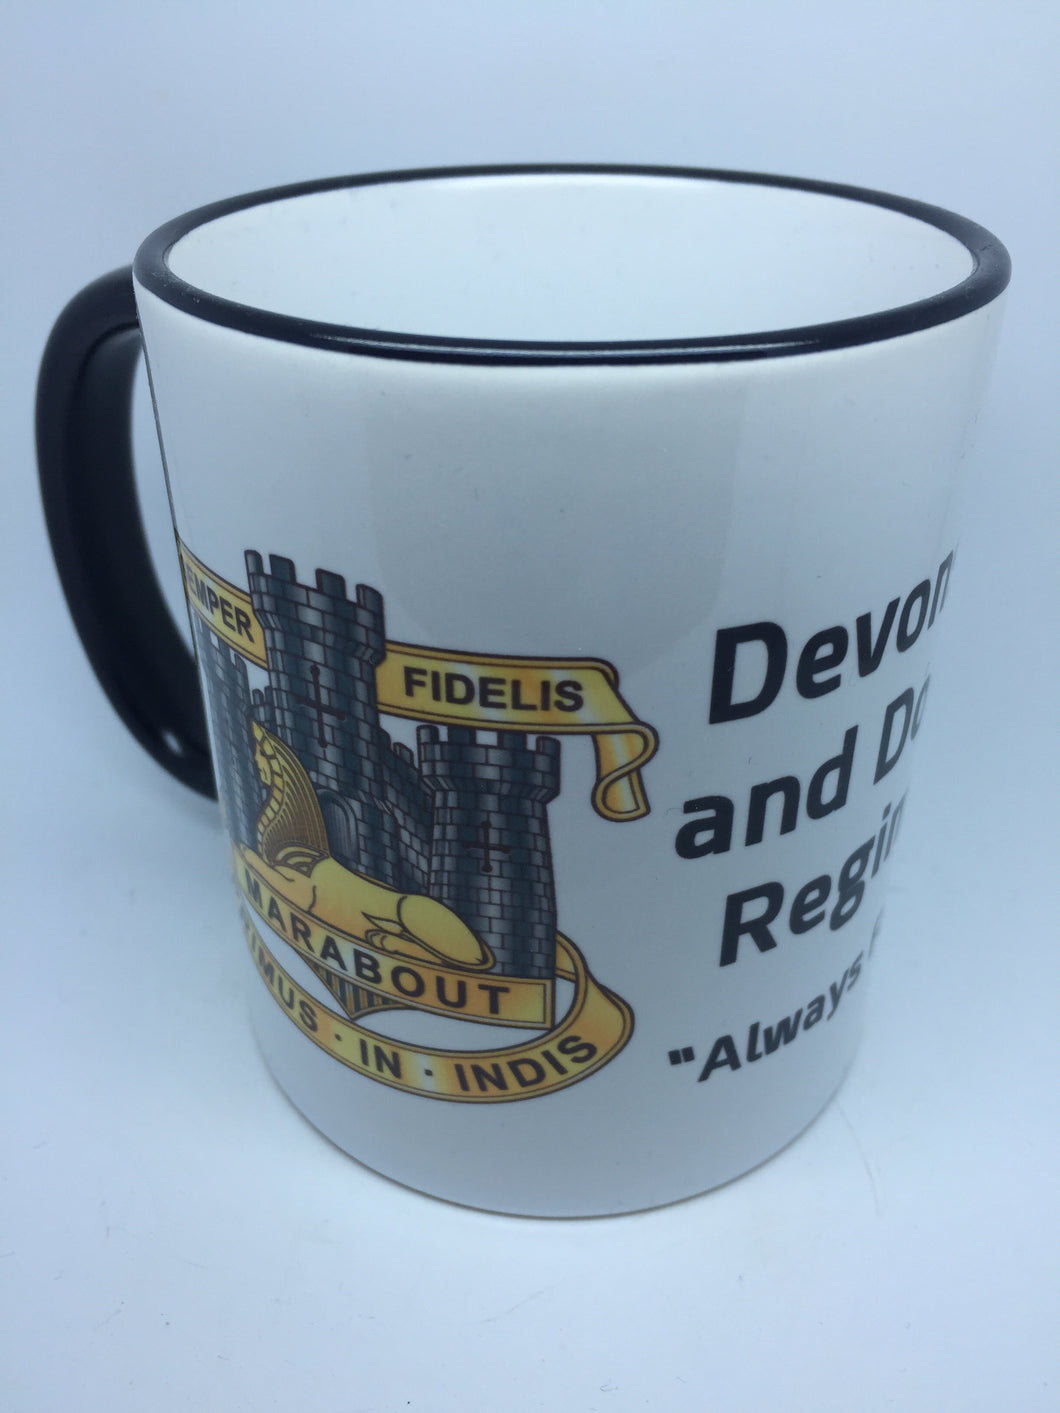 Devonshire and Dorset Regiment Coffee/Travel Mug